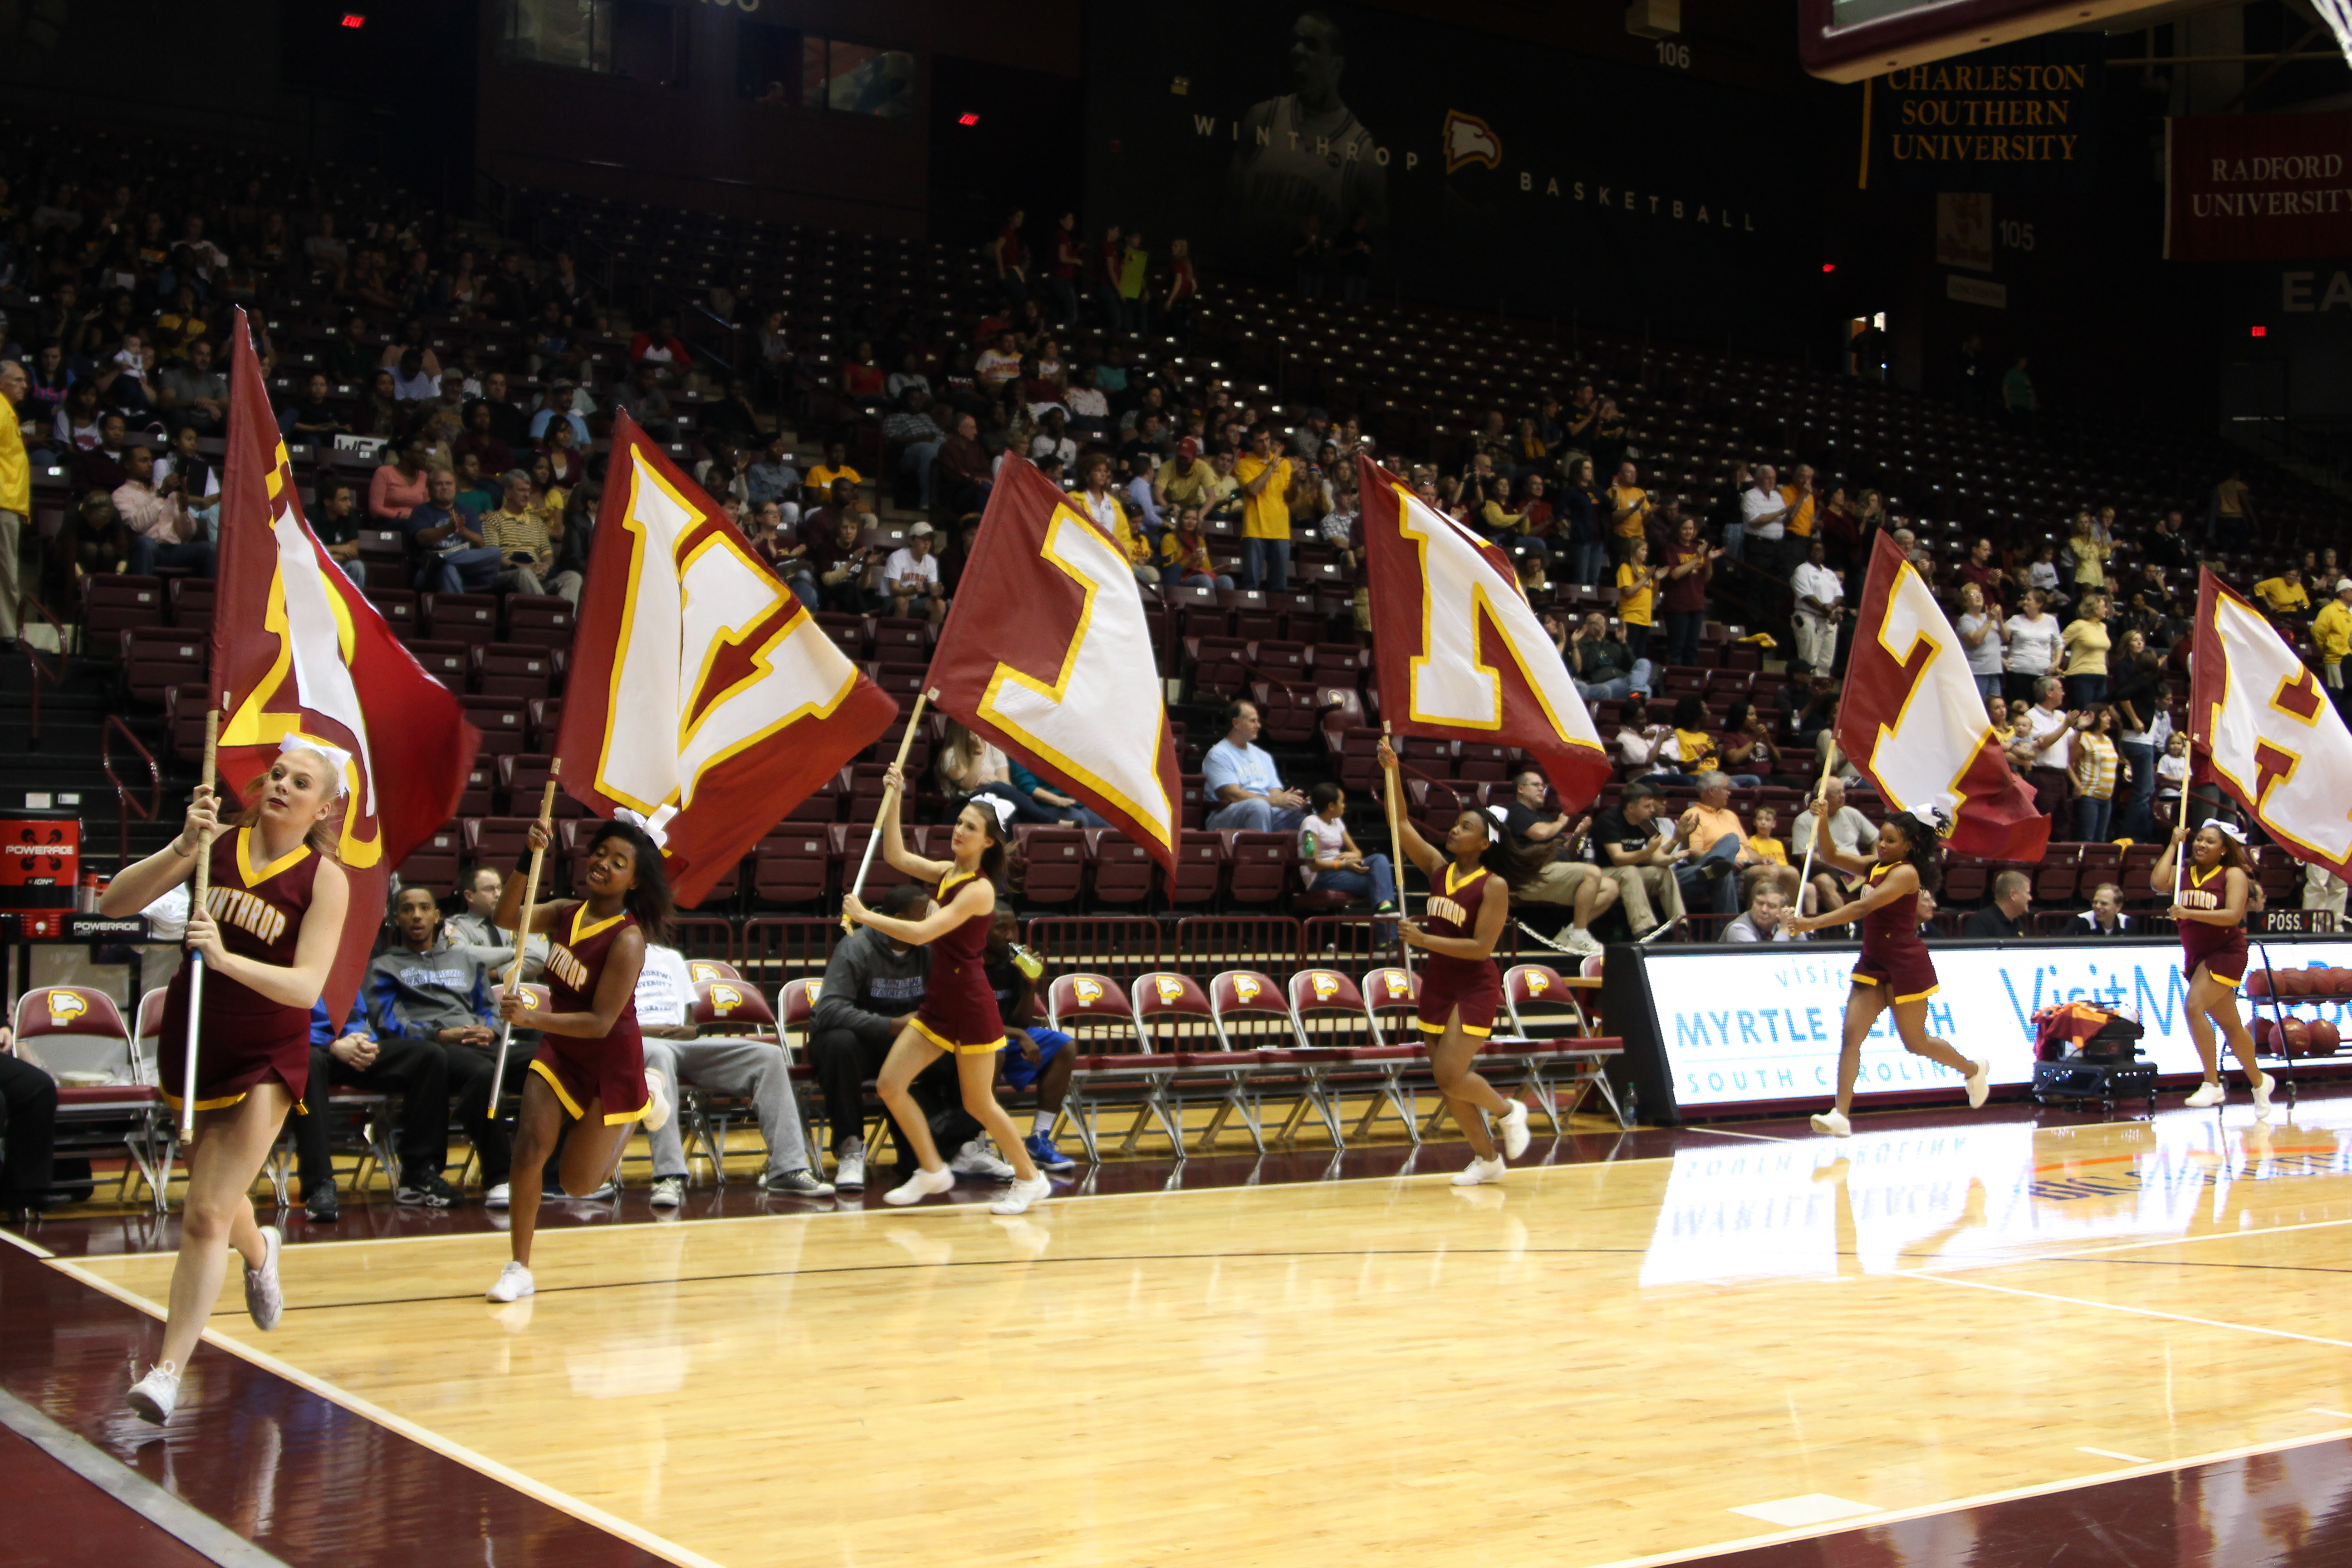 Winthrop cheerleaders rally the crowd at Homecoming. Photo by Jacob Hallex • hallexj@mytjnow.com